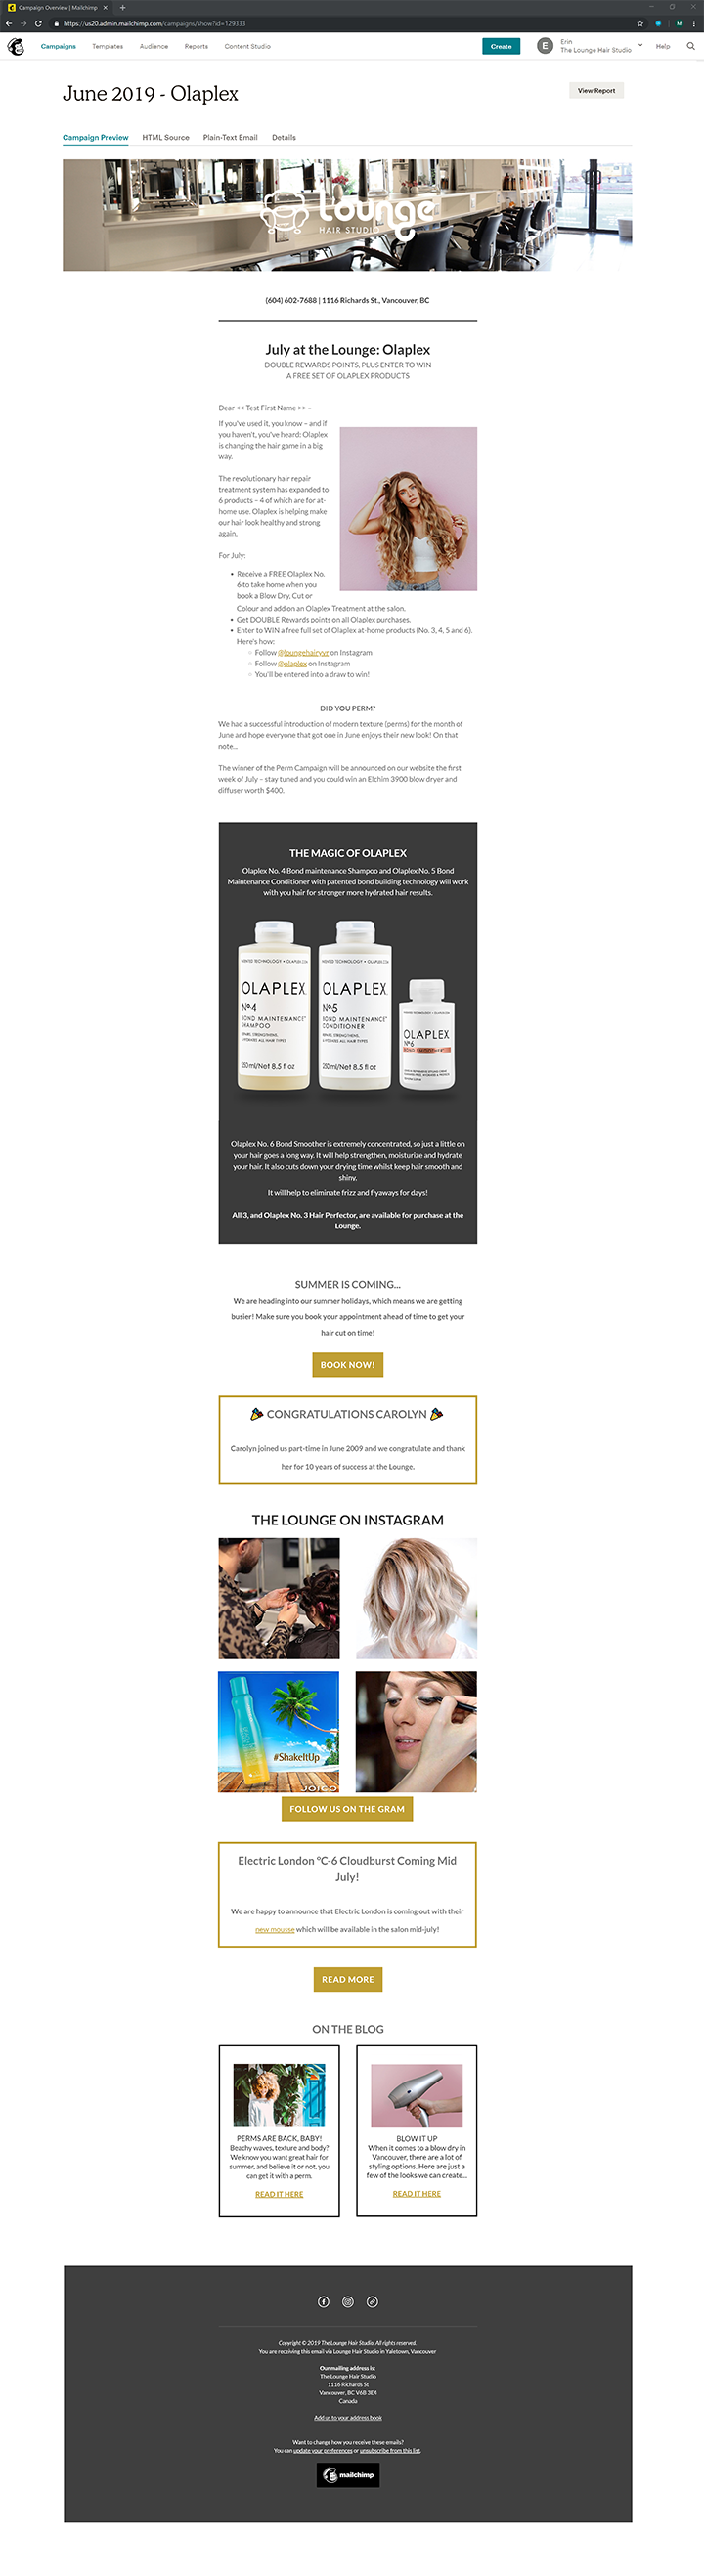 Olaplex Lounage Hair Studio Newsletter Mailchimps Vancouver created with Legendary Social Media created by Feifei Digital Ltd| Monika Szucs